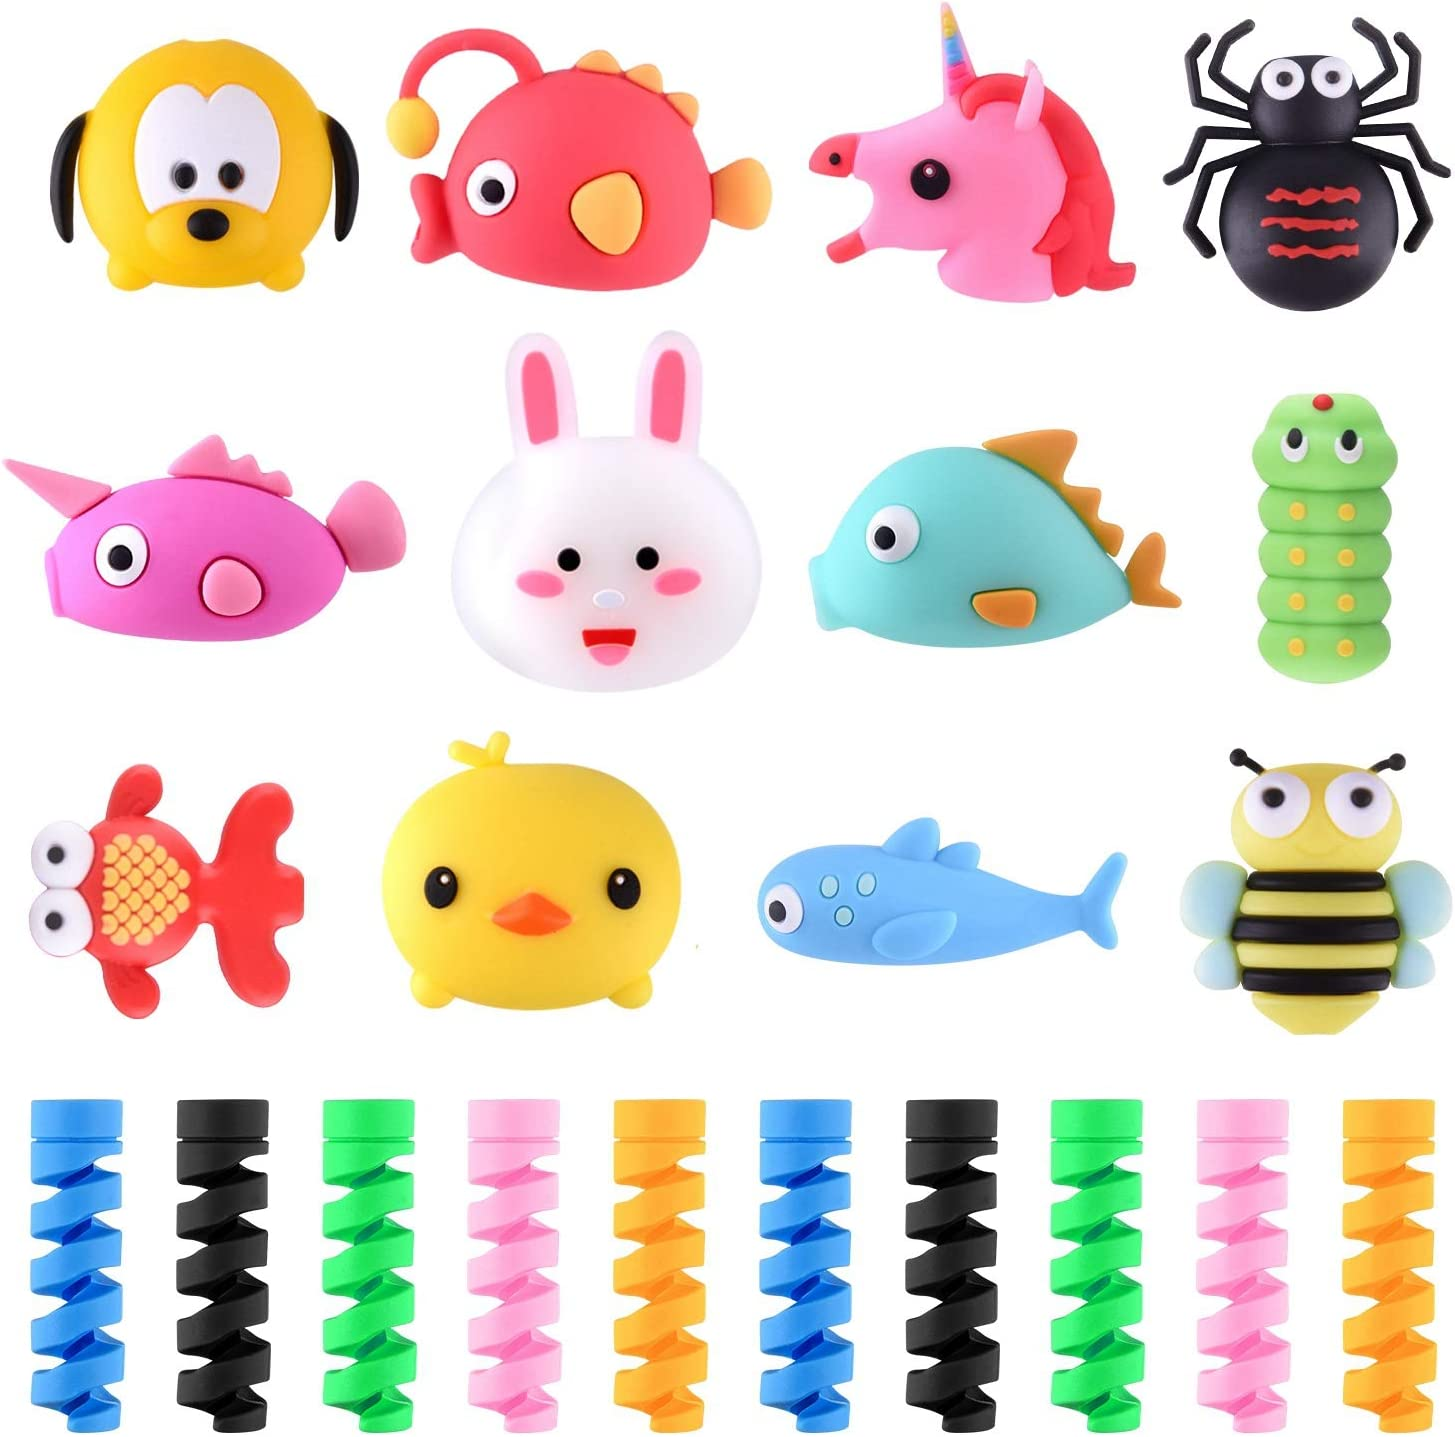 TUPARKA 22 Pcs Charger Cable Protector, Plastic Cute Fish Animal Unicorn Charging Cable Saver and Spring-Shaped Flexible Cable Protecters, USB Cable Saver Phone Accessory Protect Charger Cable